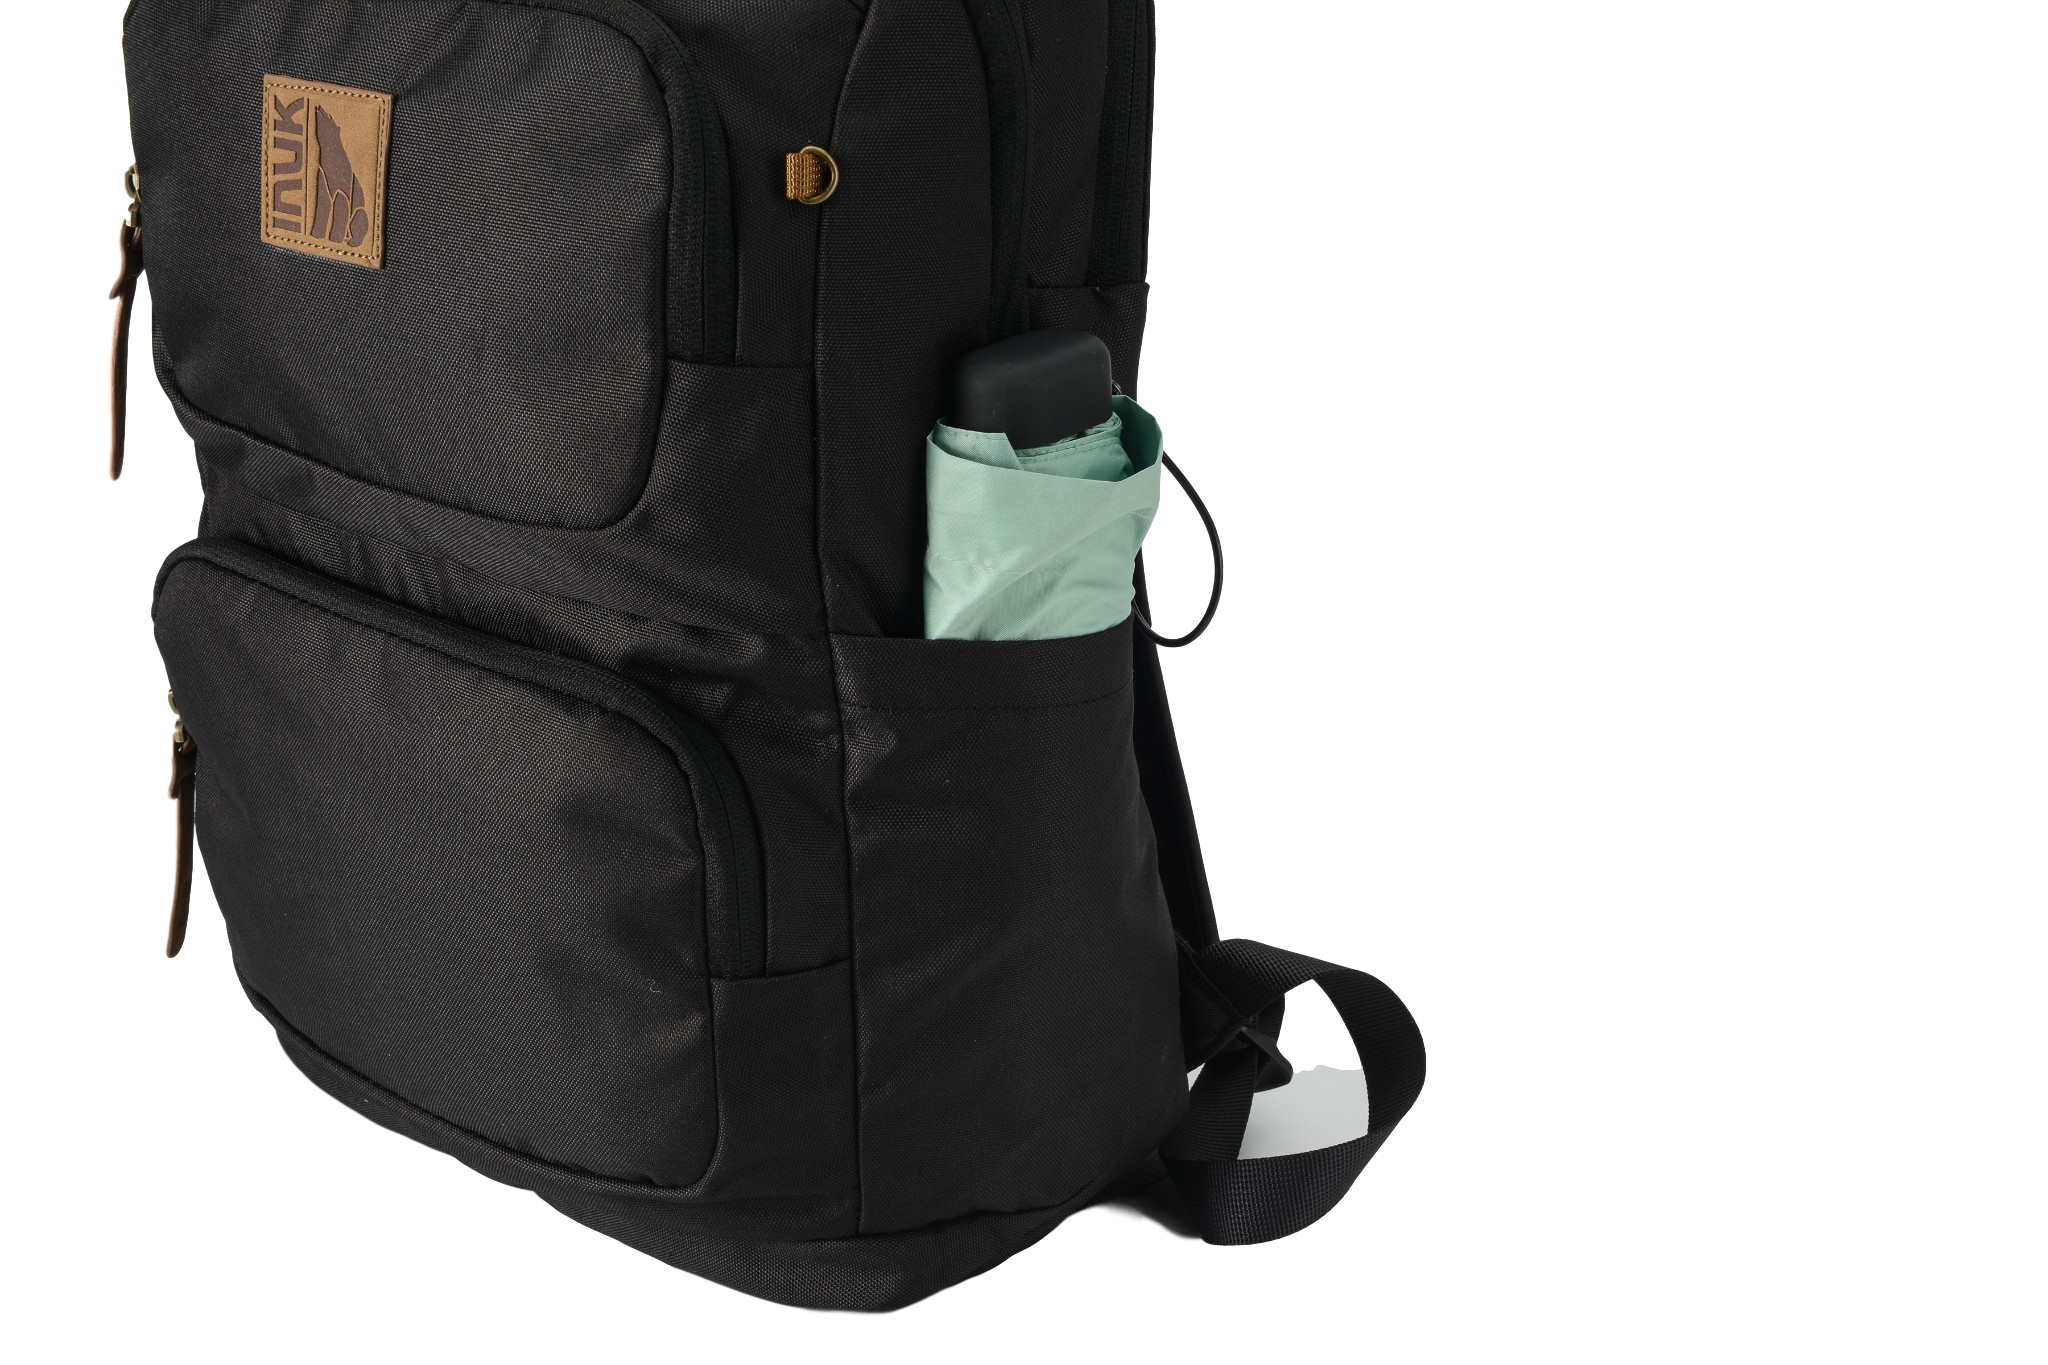 Primary Collection - Pilot Backpack-Meteo Black - INUK  BAGS